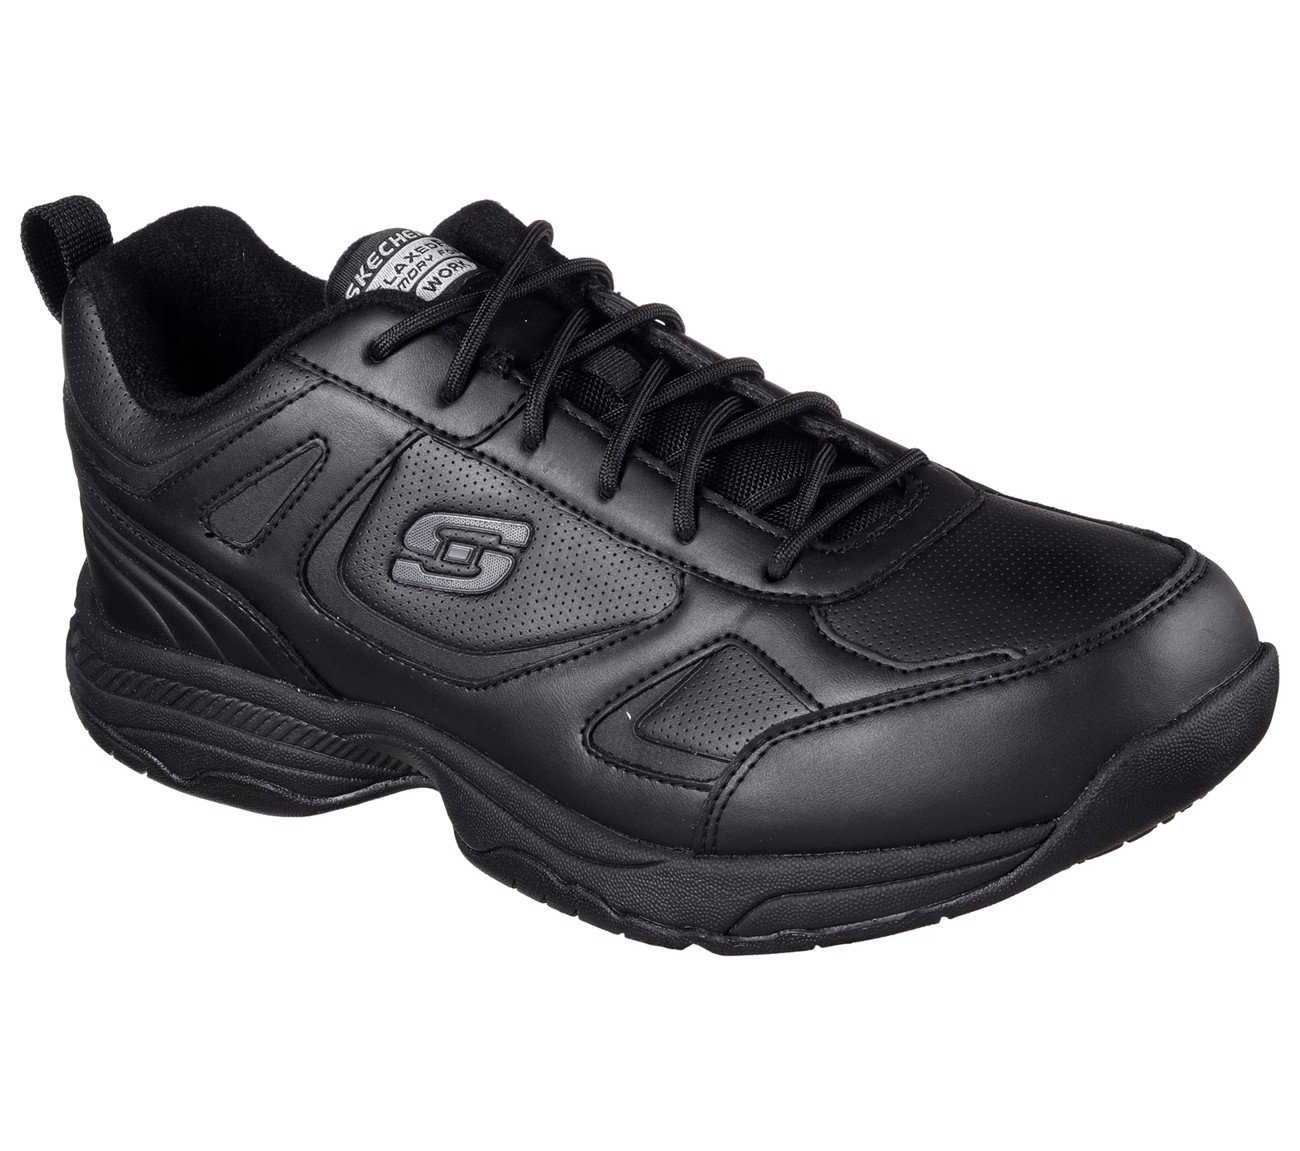 51e9704314e Display product reviews for SKECHERS Men s Work Relaxed Fit Dighton SR  Service Shoes